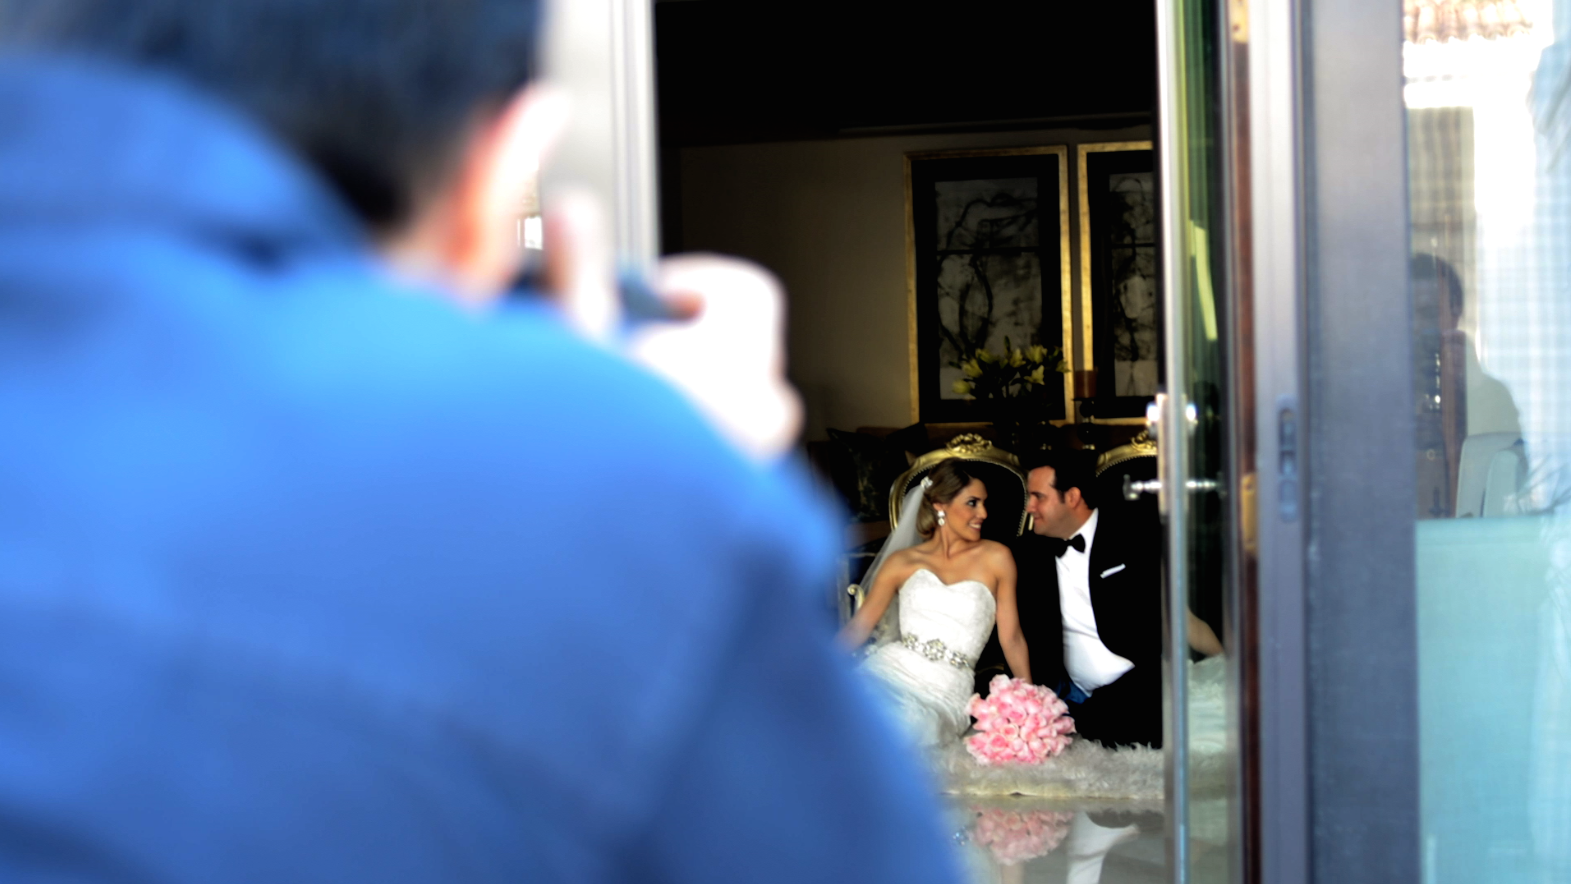 Video Boda Ana Laura y David en Hermosillo.